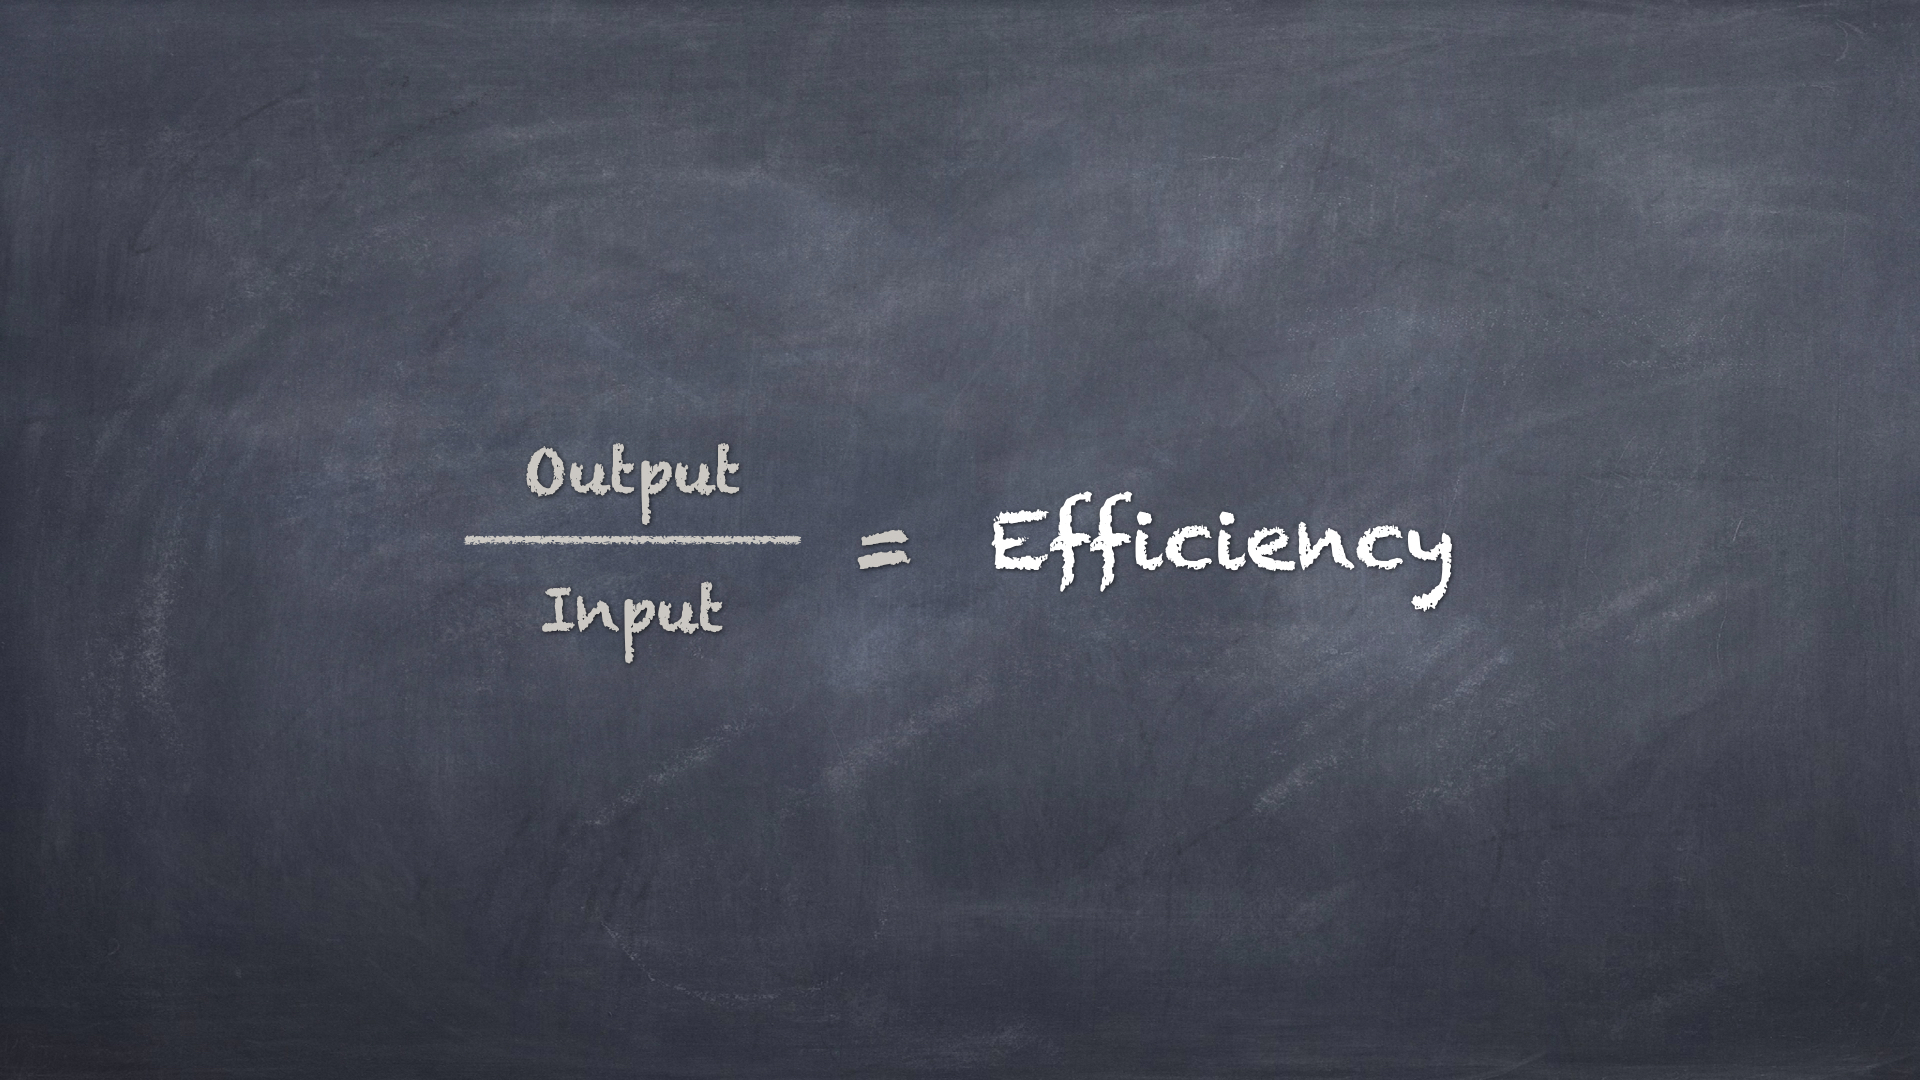 Input-Output Efficiency - Image by the Author